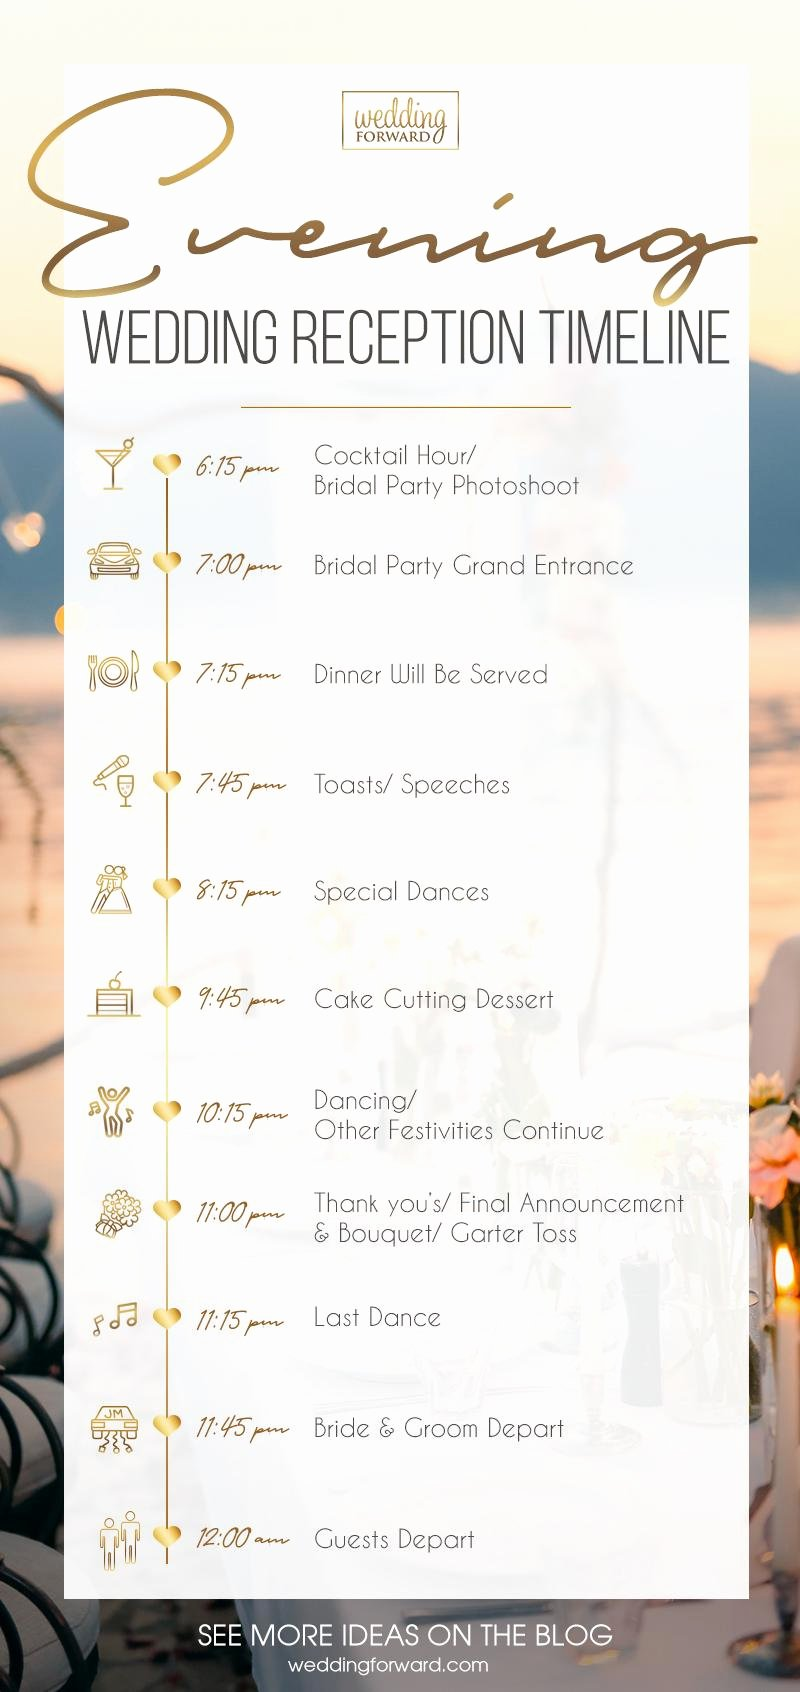 Wedding Reception Timeline Template Lovely Wedding Reception Timeline Expert Tips to Create & 3